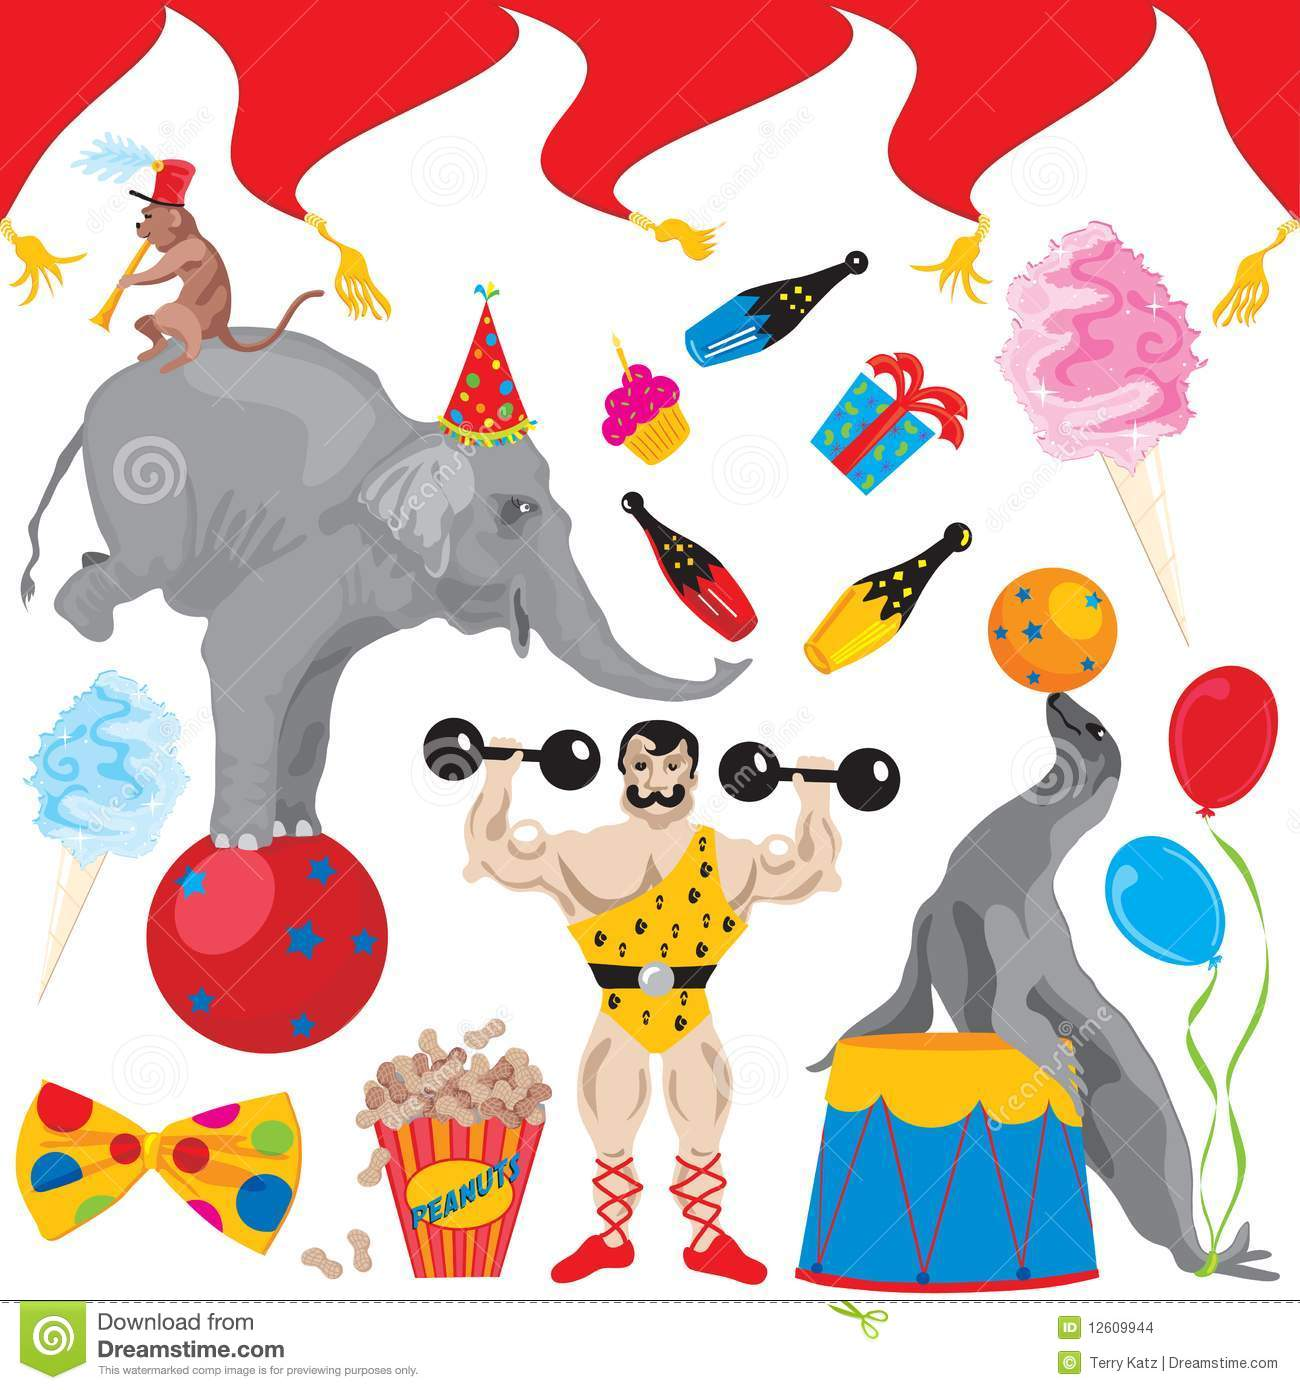 Circus Birthday Party Clip Art Icons Stock Images - Image: 12609944